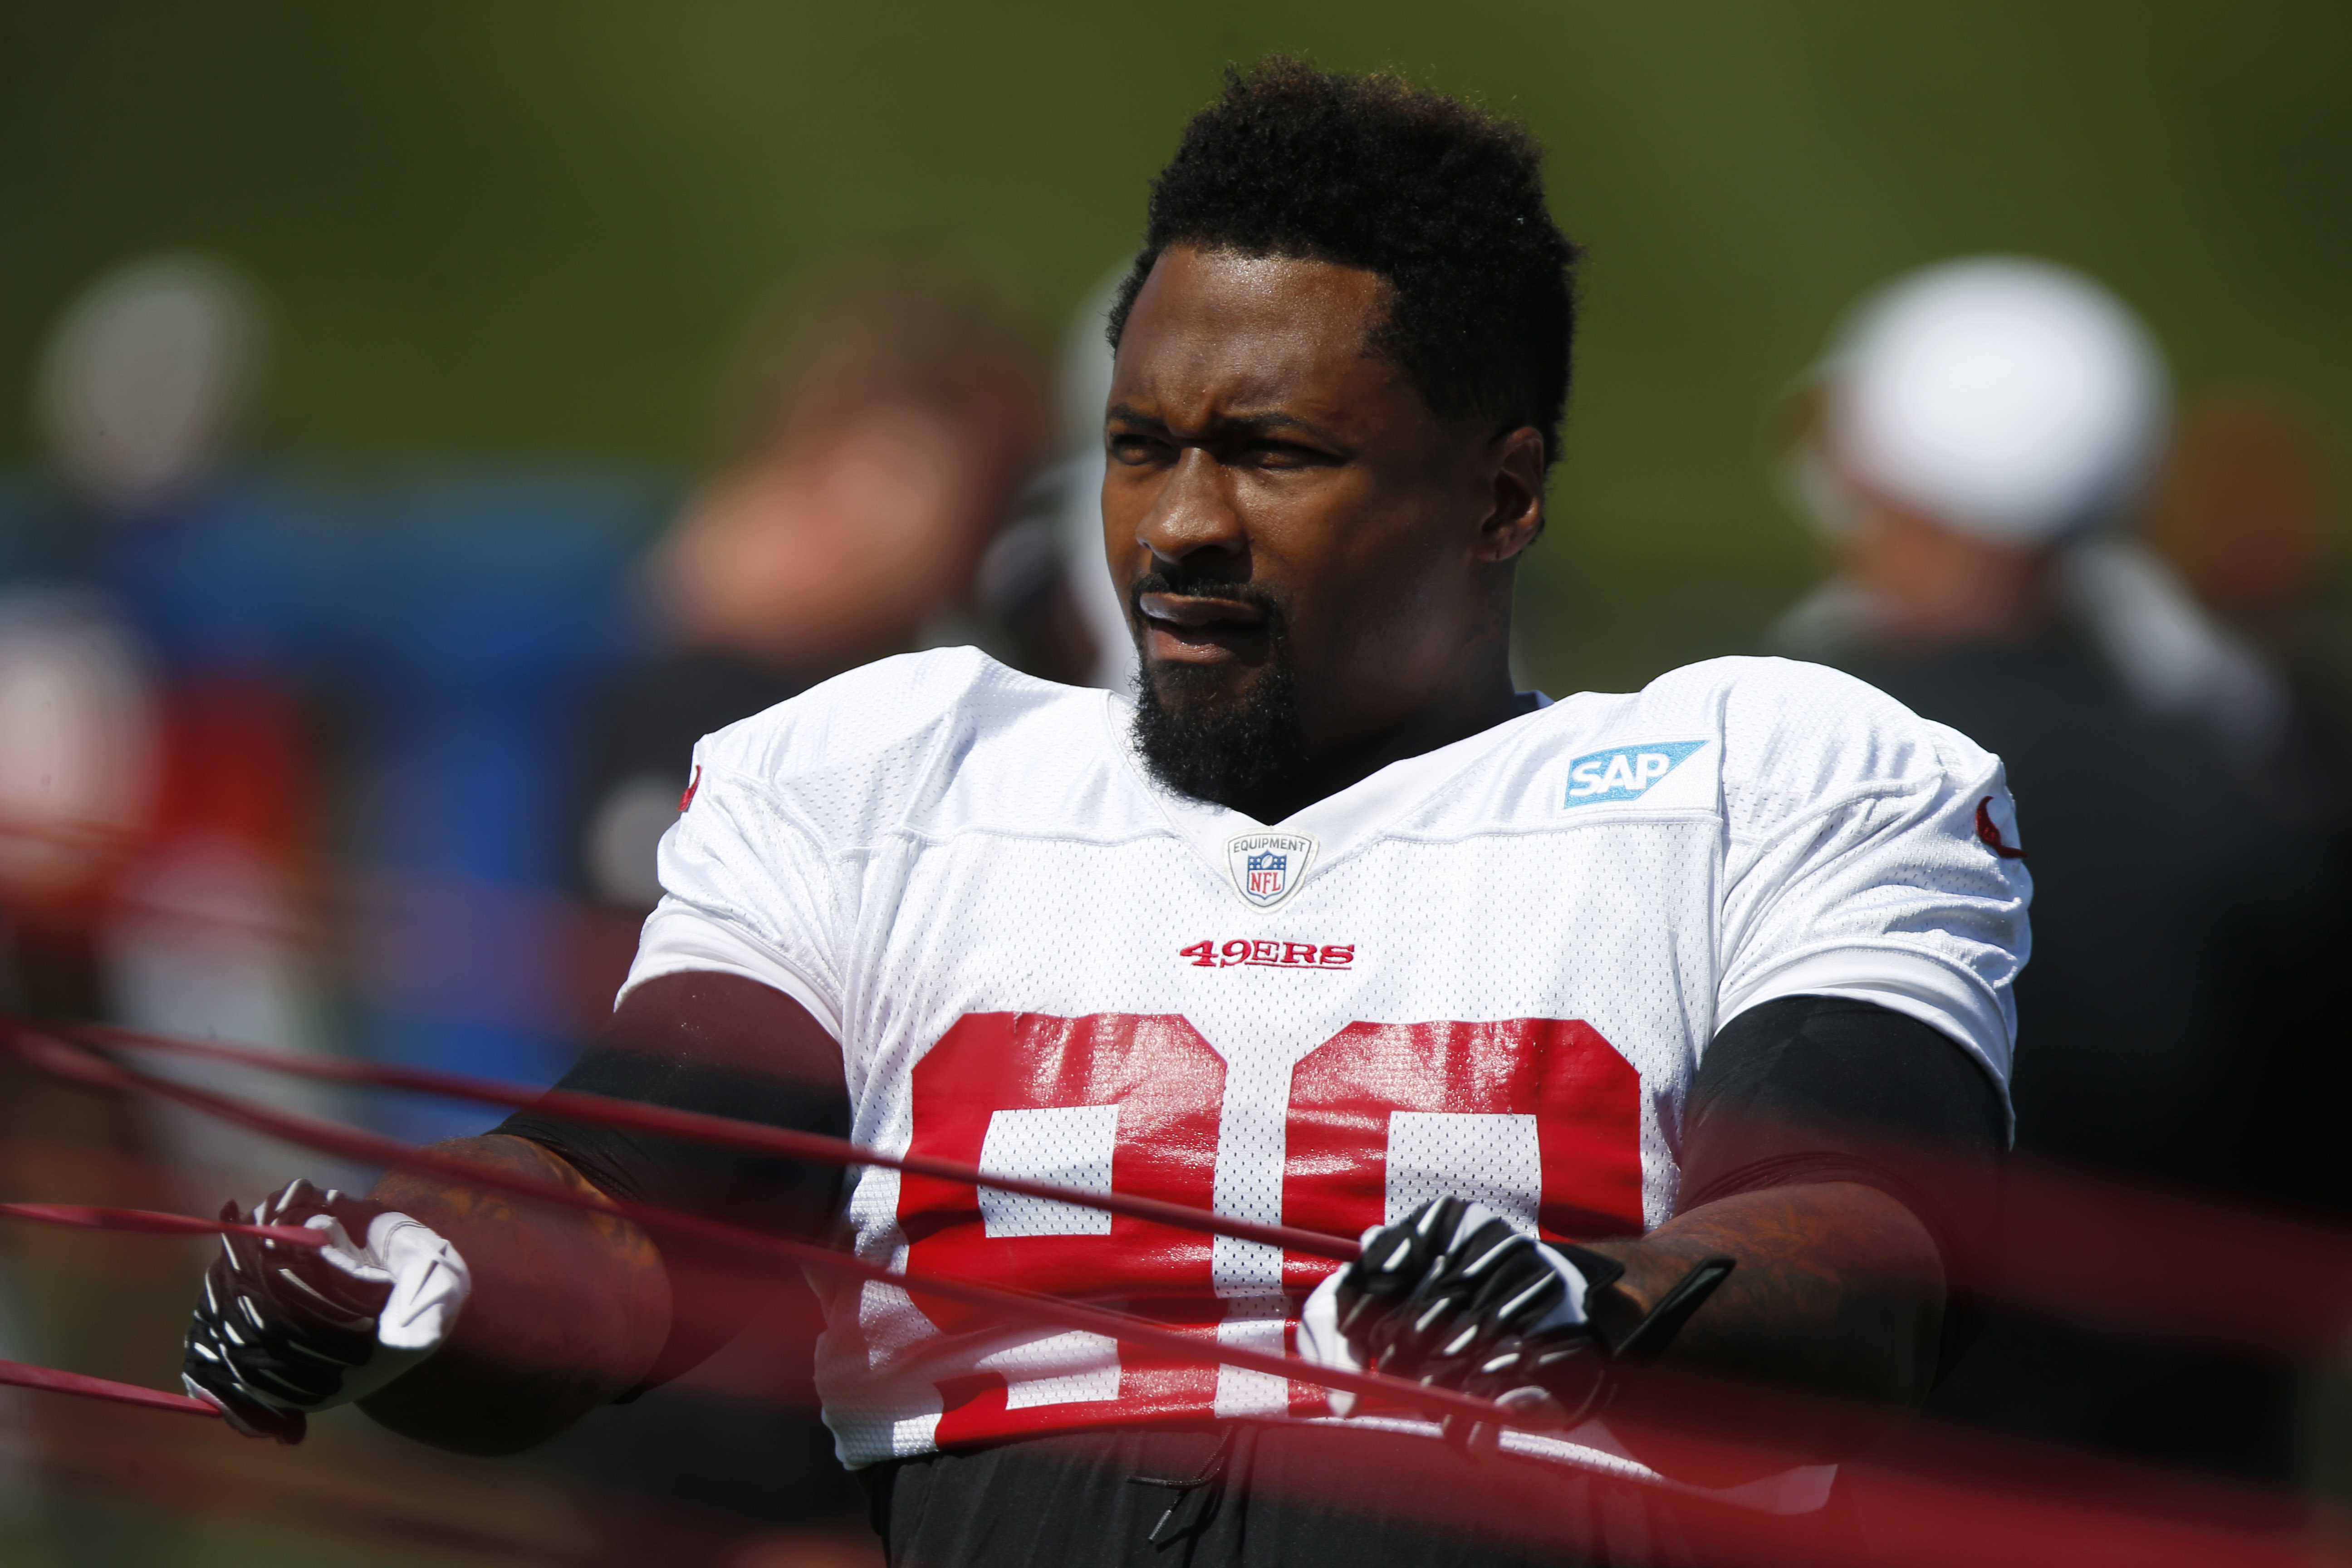 San Francisco 49ers defensive tackle Darnell Dockett (90) during an NFL football scrimmage at the Broncos' headquarters Wednesday, Aug. 26, 2015, in Englewood, Colo. (AP Photo/David Zalubowski)